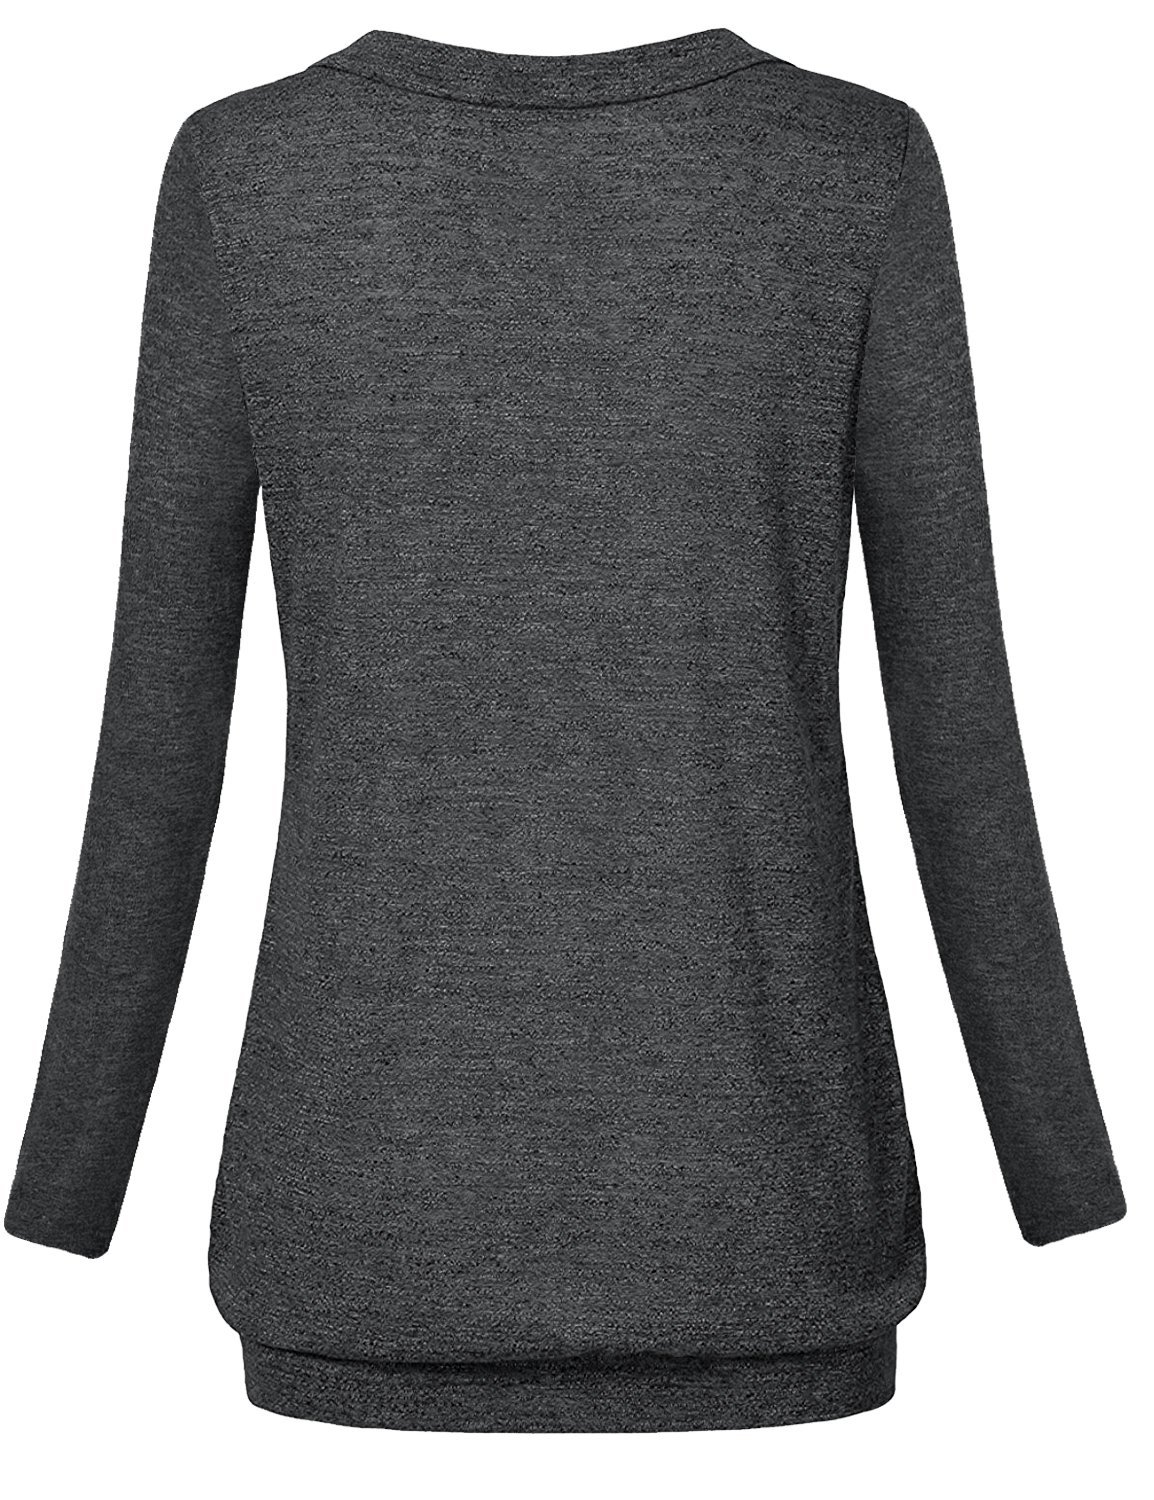 Hellmei Trendy Tops for Women 2018,Breastfeeding Shirts for Women, Long Sleeve Banded Hem Pleated Flattering Blouse Tunic Shirts for Women Black Grey Medium by Hellmei (Image #3)